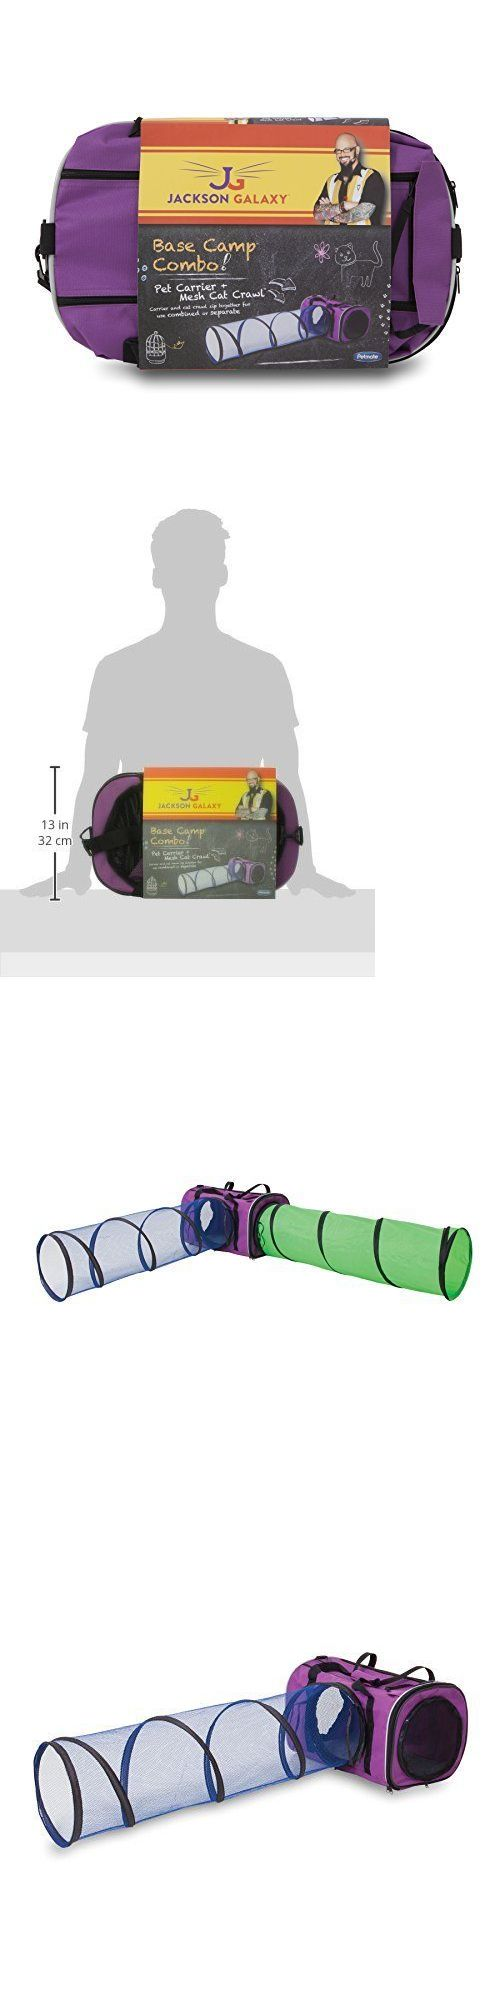 Toys 20741: Petmate Jackson Galaxy Base Camp Carrier With Mesh Tunnel, New -> BUY IT NOW ONLY: $56.29 on eBay!